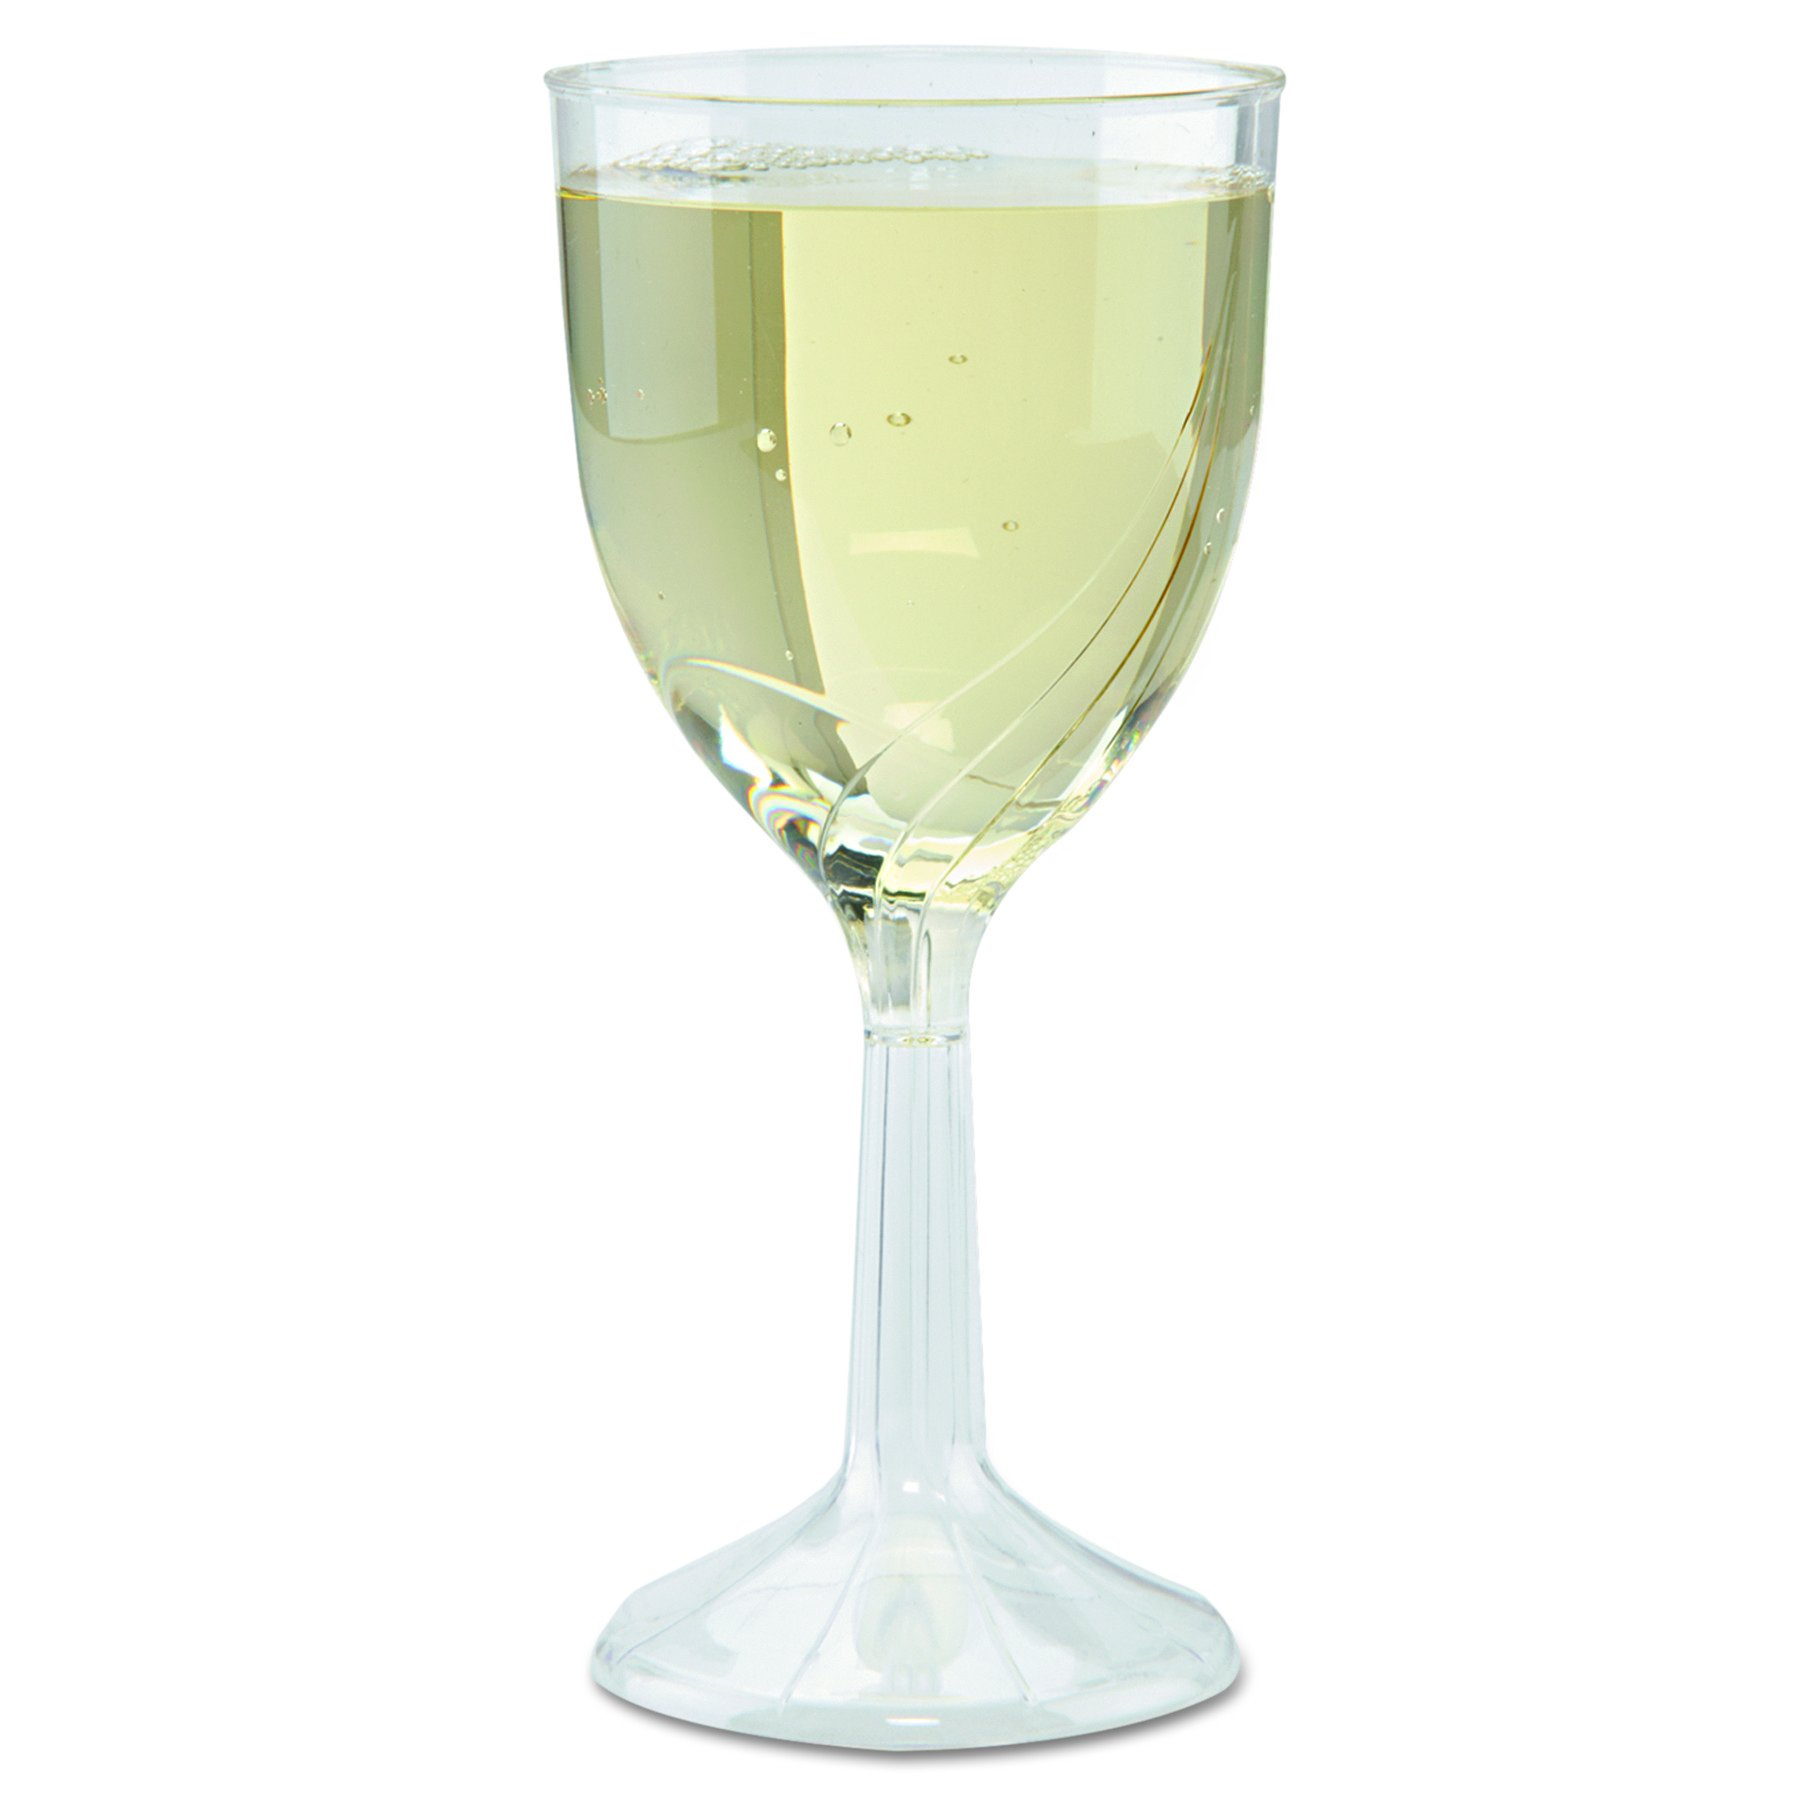 WNA CWSWN6 Classicware One-Piece Wine Glasses, 8 oz, Clear, (6 Wine Glasses)